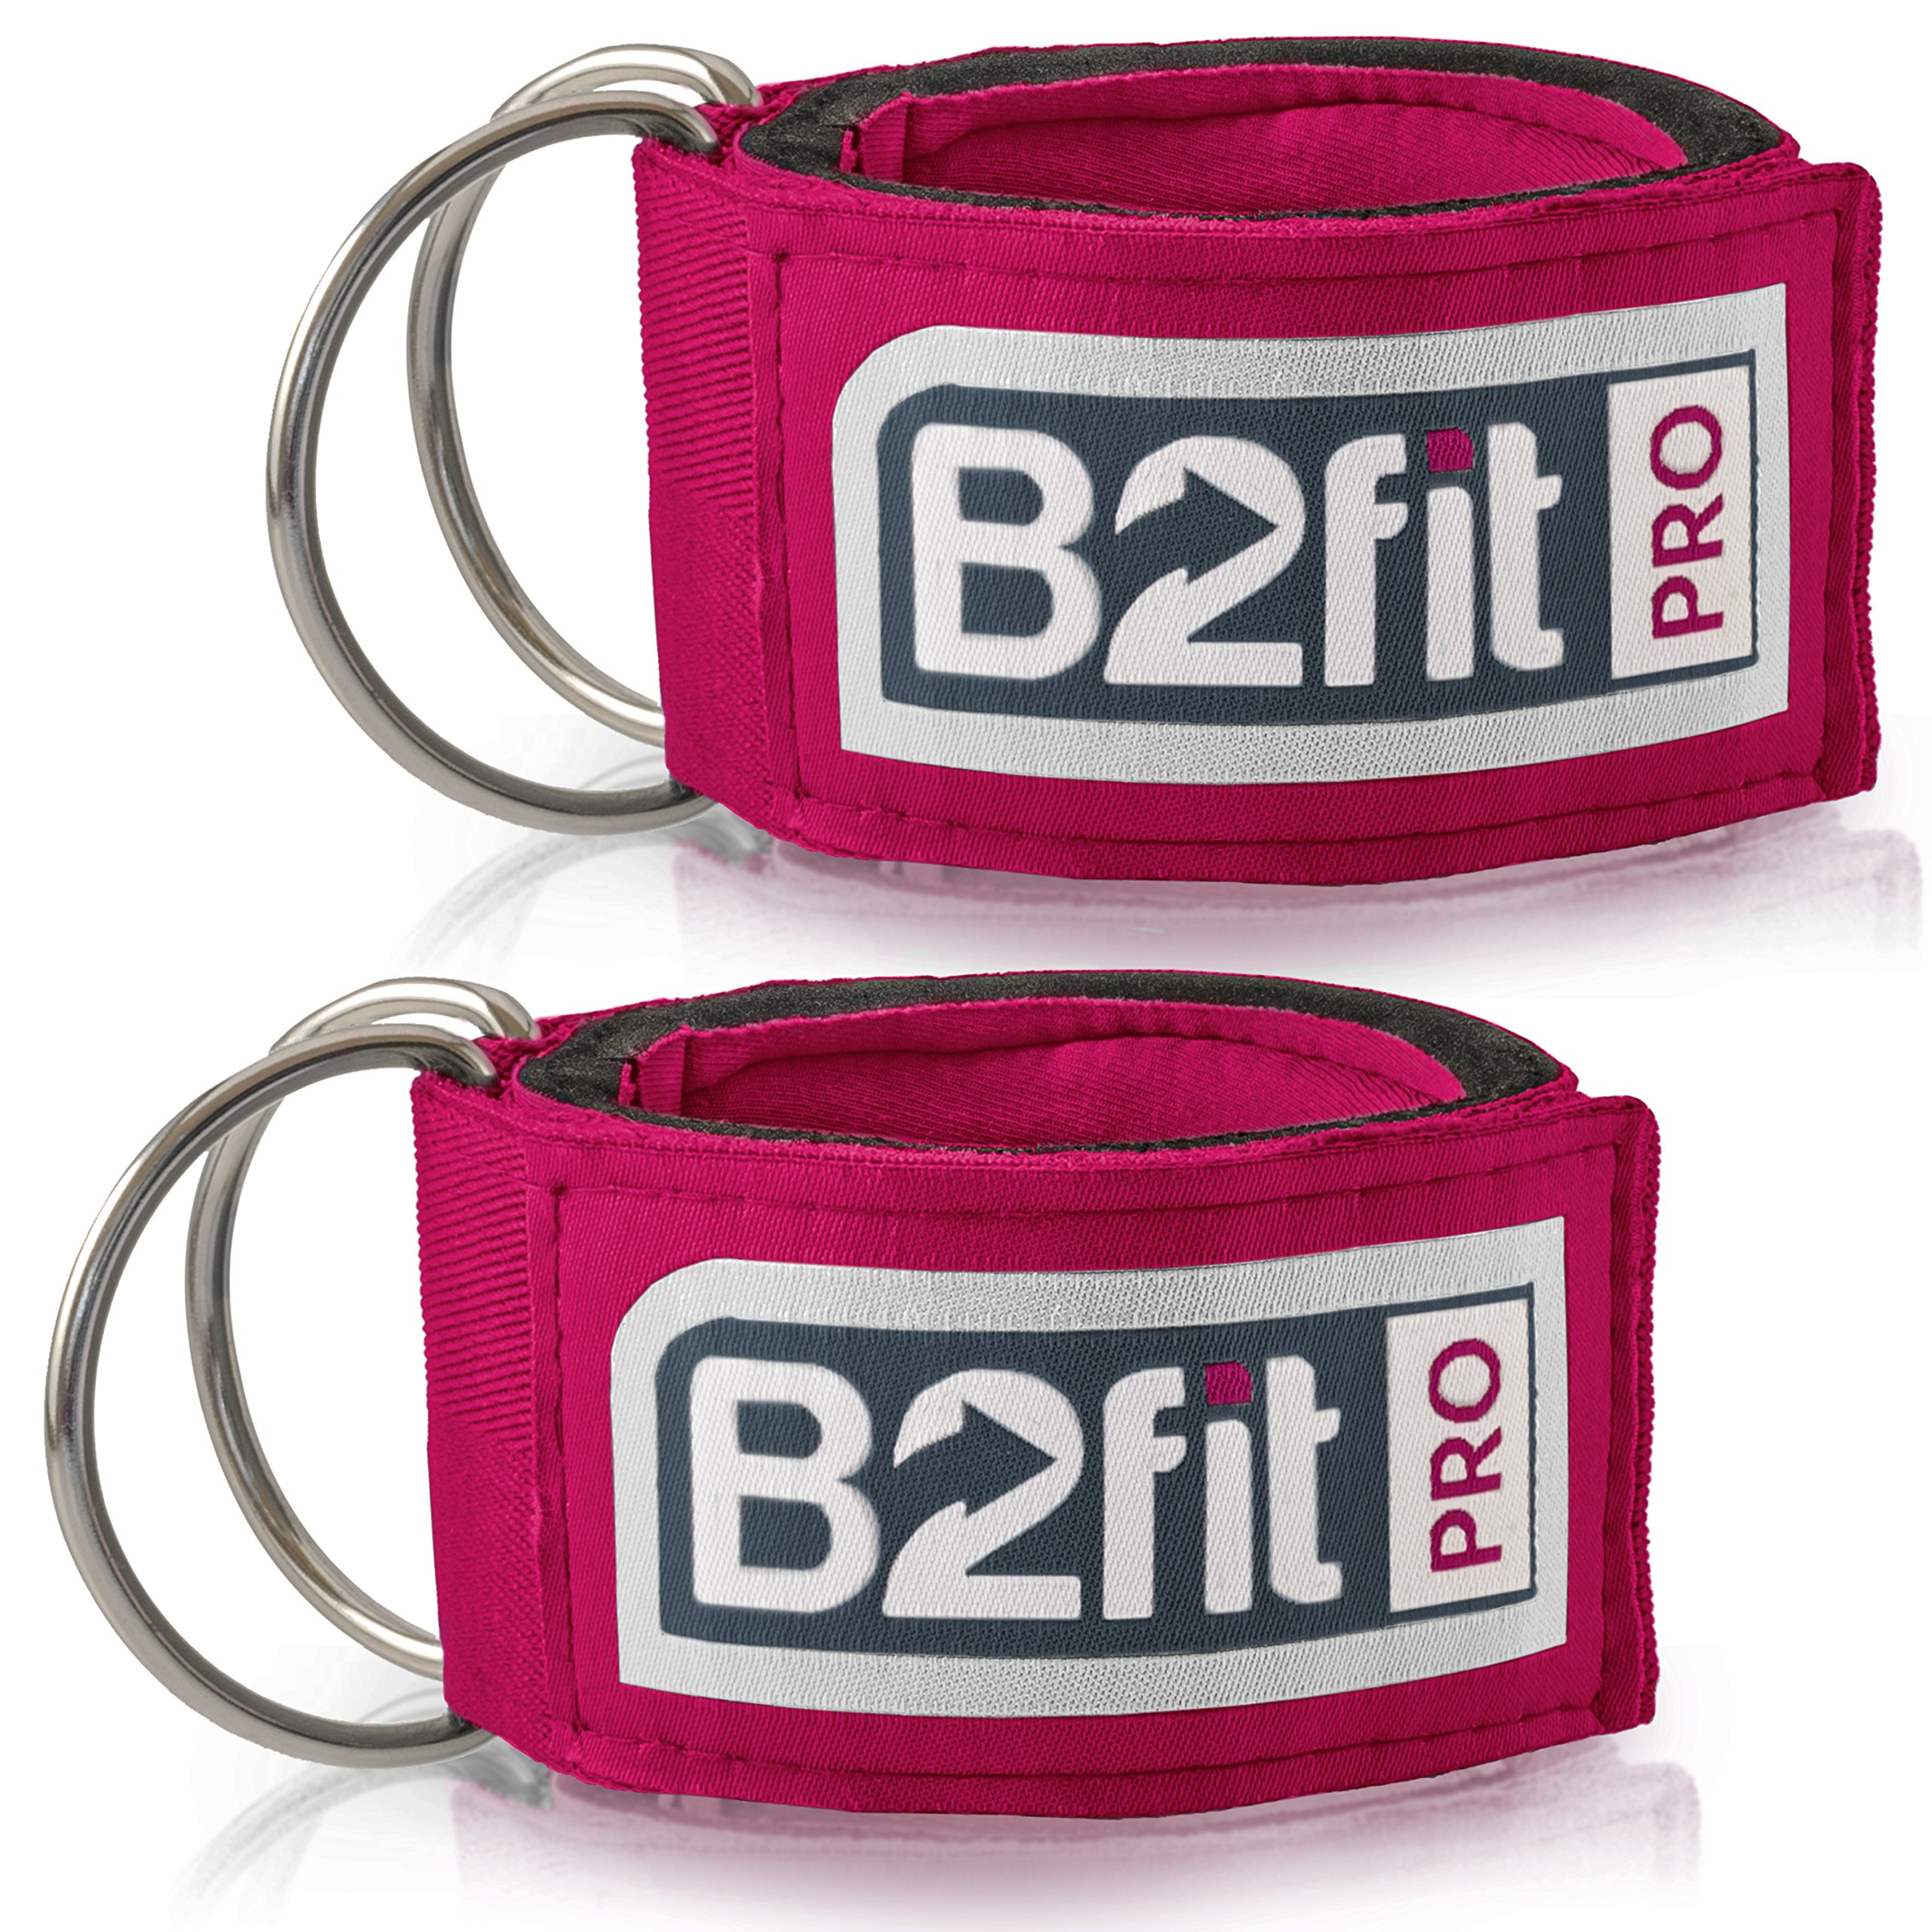 Ankle Straps for Cable Machines by B2FIT PRO – Premium Padded Double D-Ring Ankle Cuffs for Gym Workouts – Fitness…